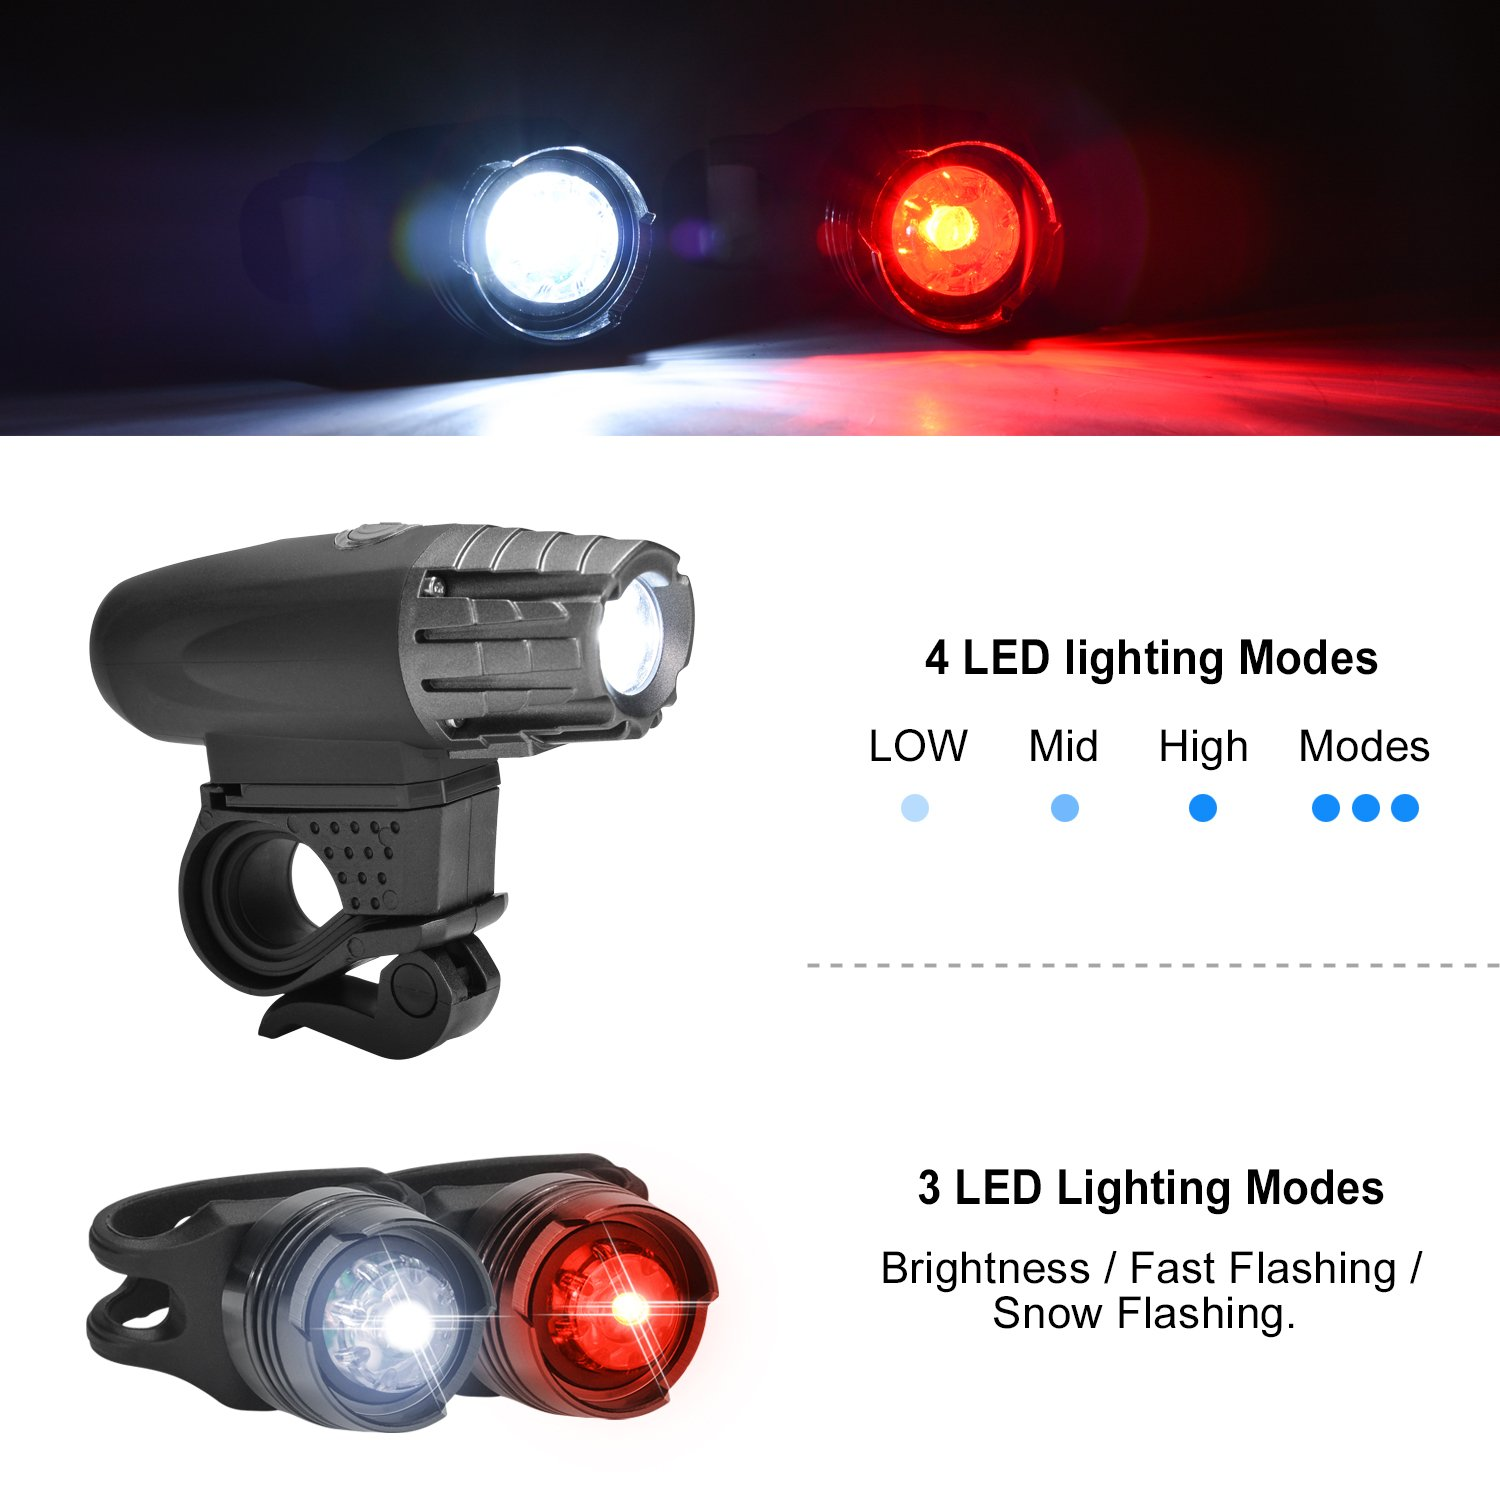 Ultra-Bright LED Bicycle Front and Tail Lights with 4+3 Lightening Modes Optional Waterproof and Easy to Install for Cycling Safety Flashlight Odoland USB Rechargeable Bike Light Set